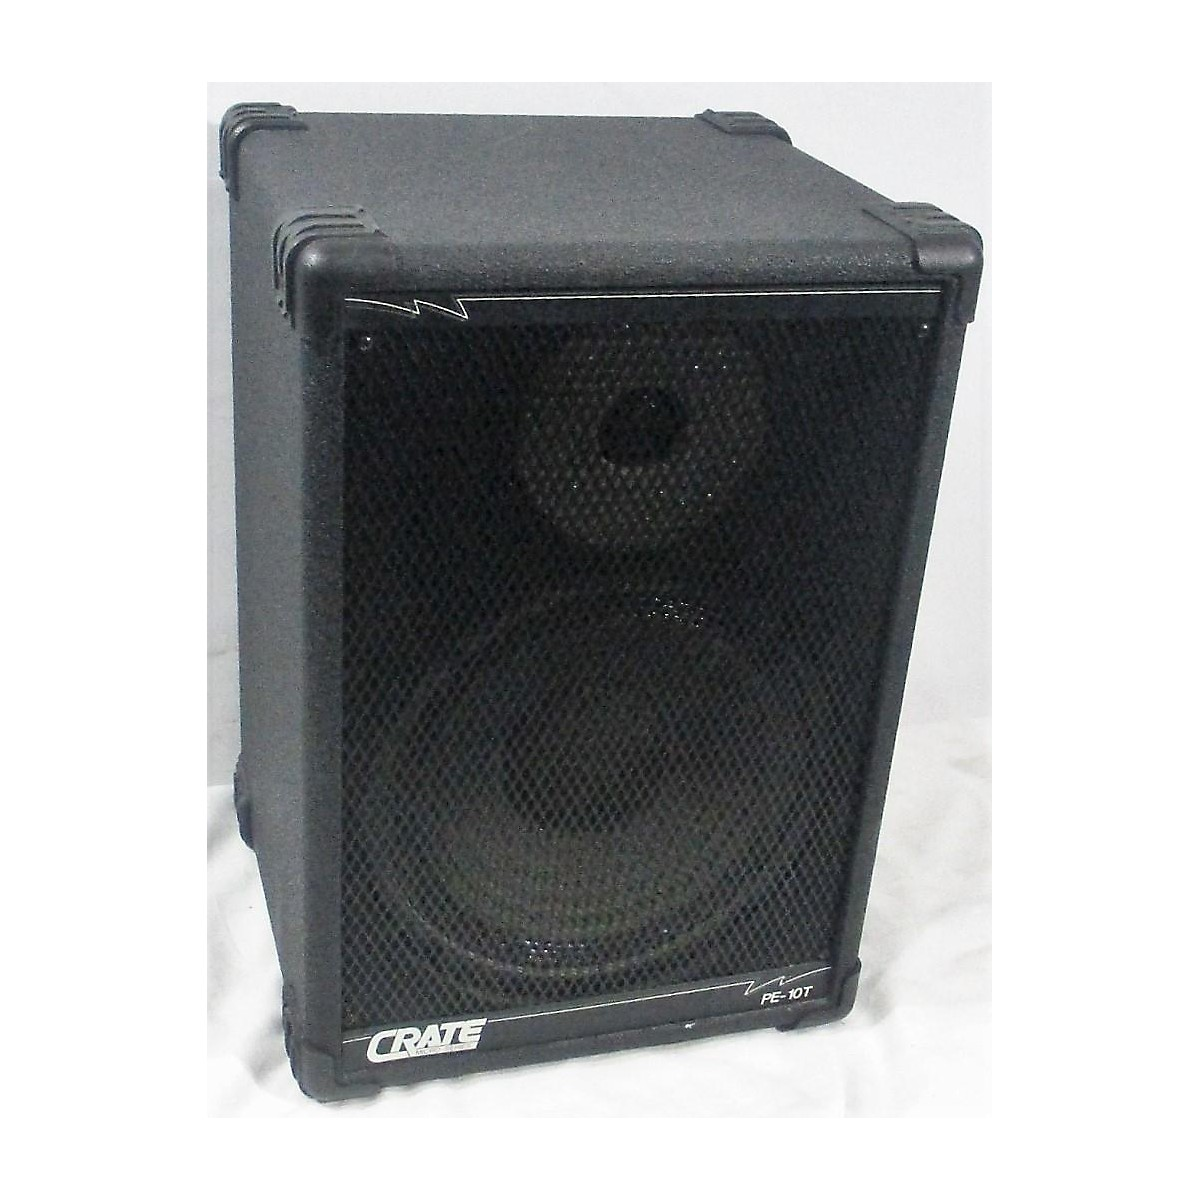 Crate PSM15 Unpowered Speaker